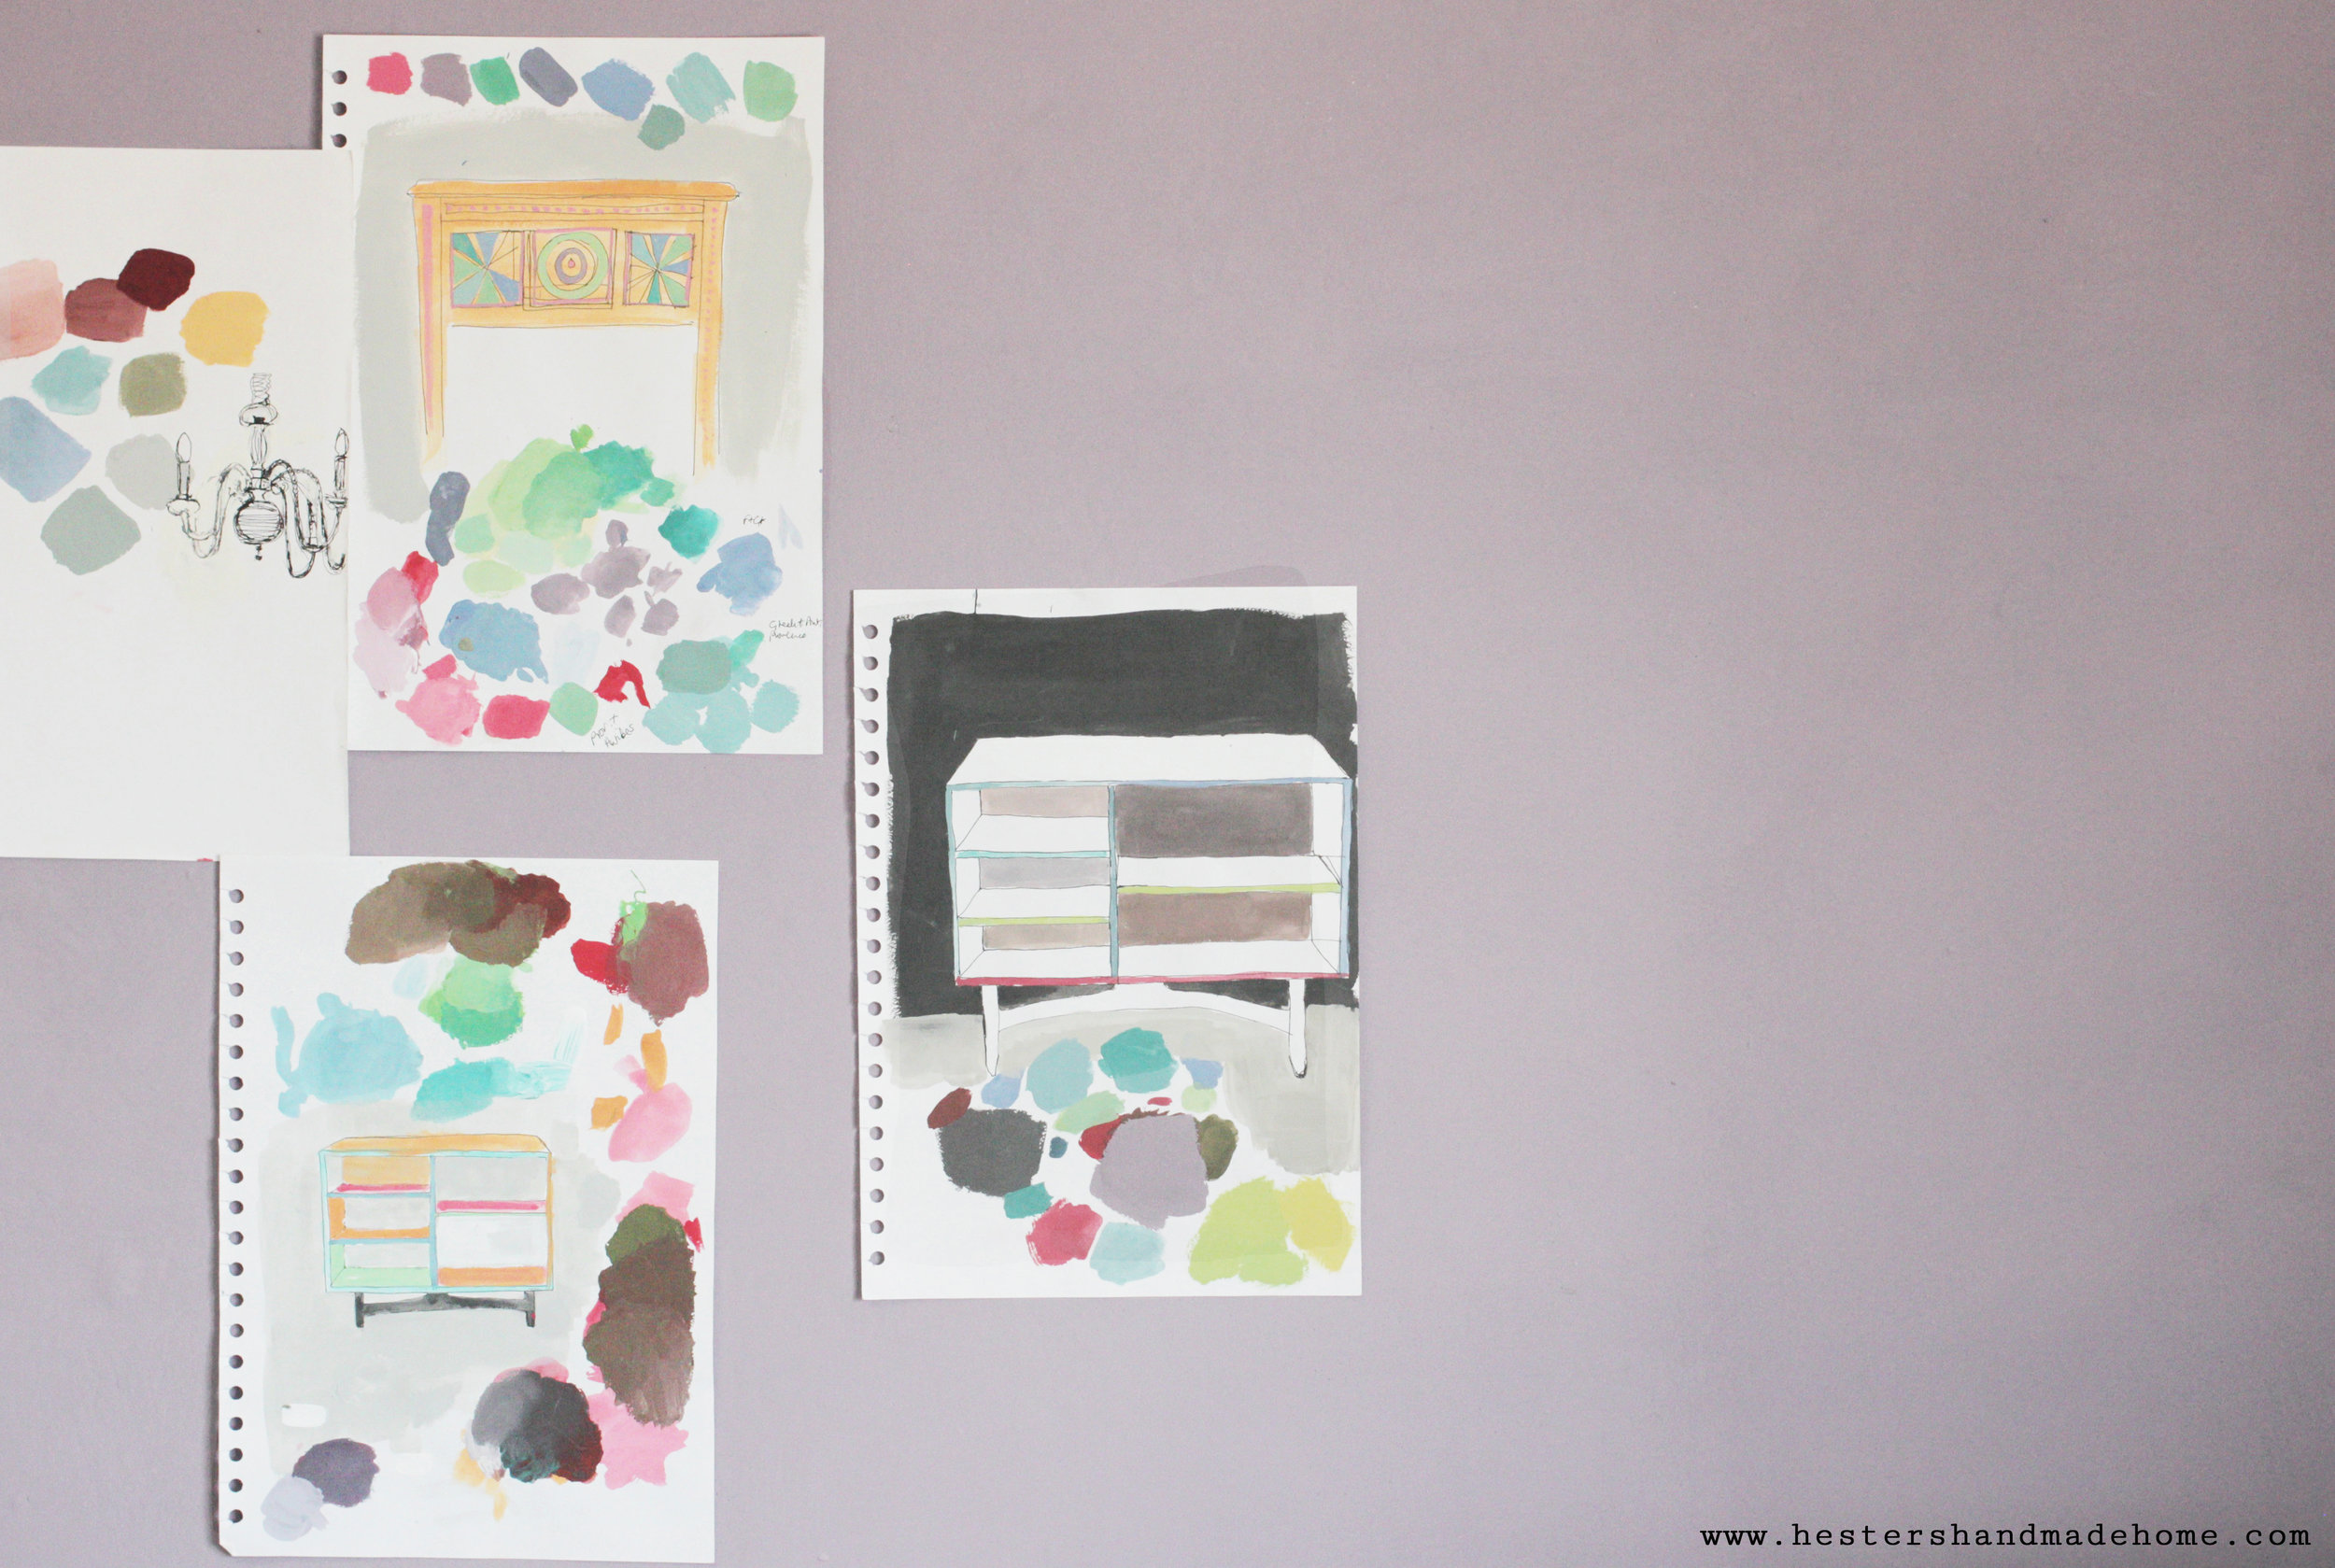 Sketches in the Annie Sloan studio, photo by www.hestershandmadehome.com